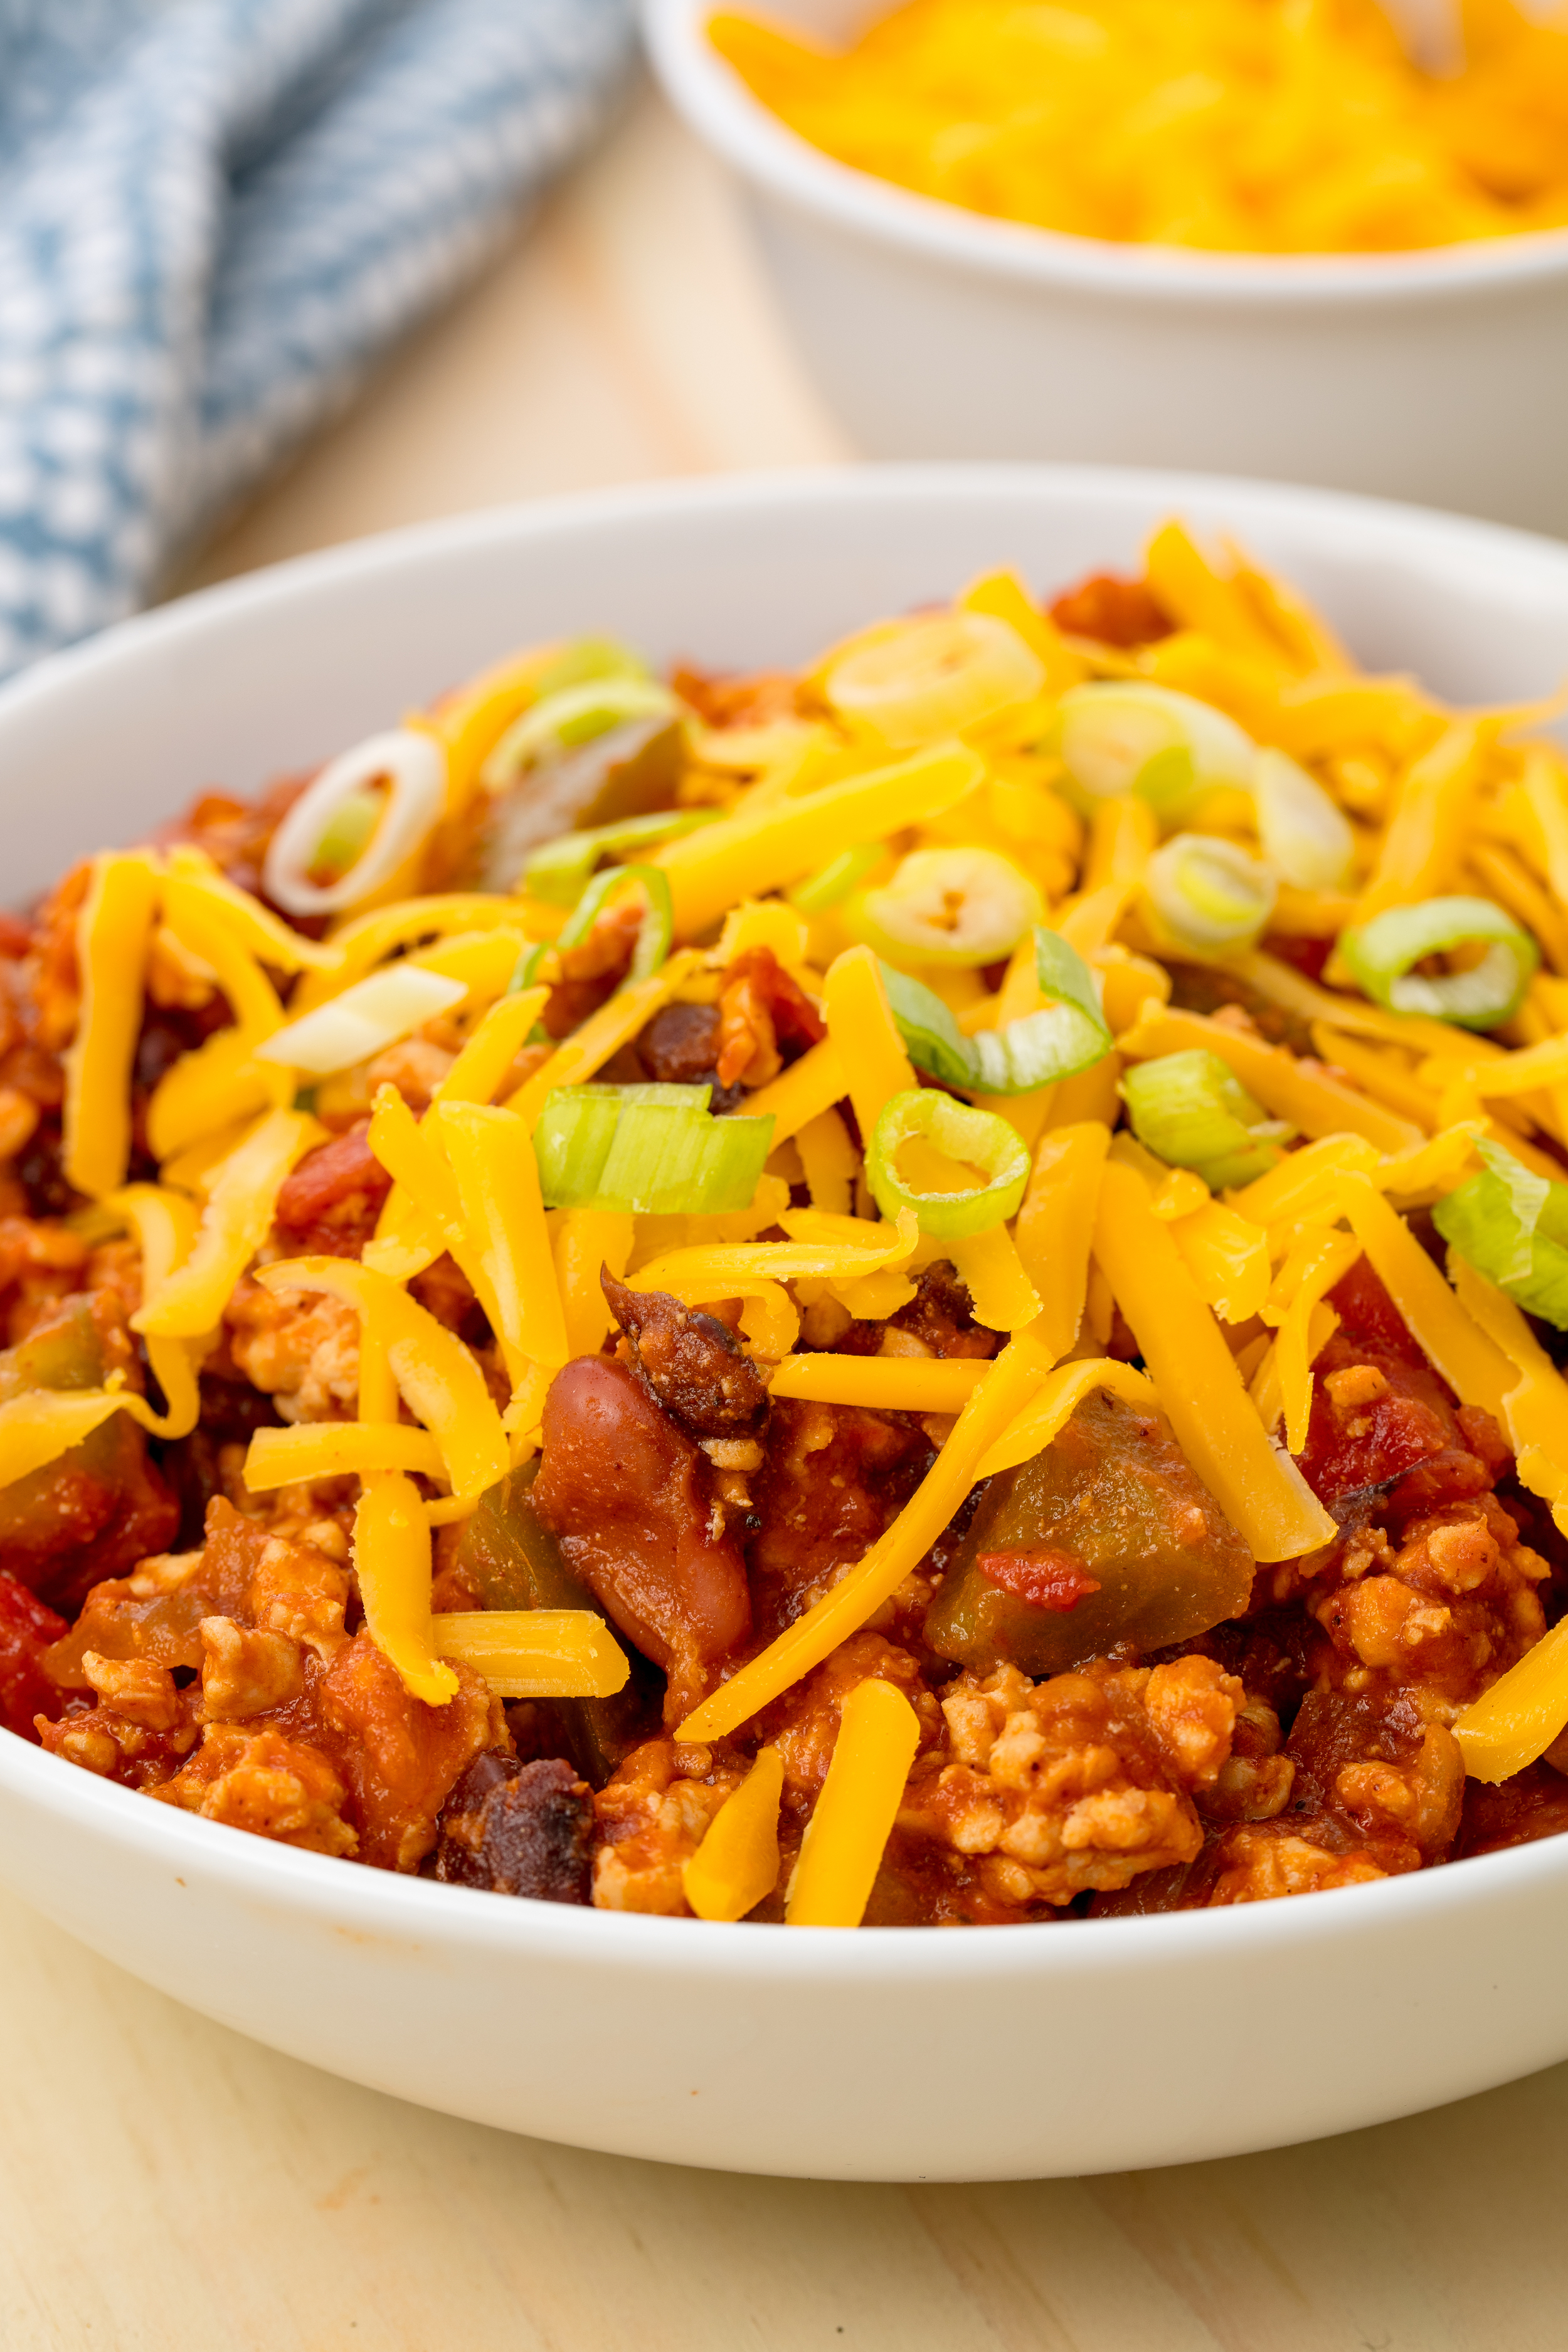 turkey recipes ground healthy meals cooking delish chilli chili recipe easy beef foodie yahoo